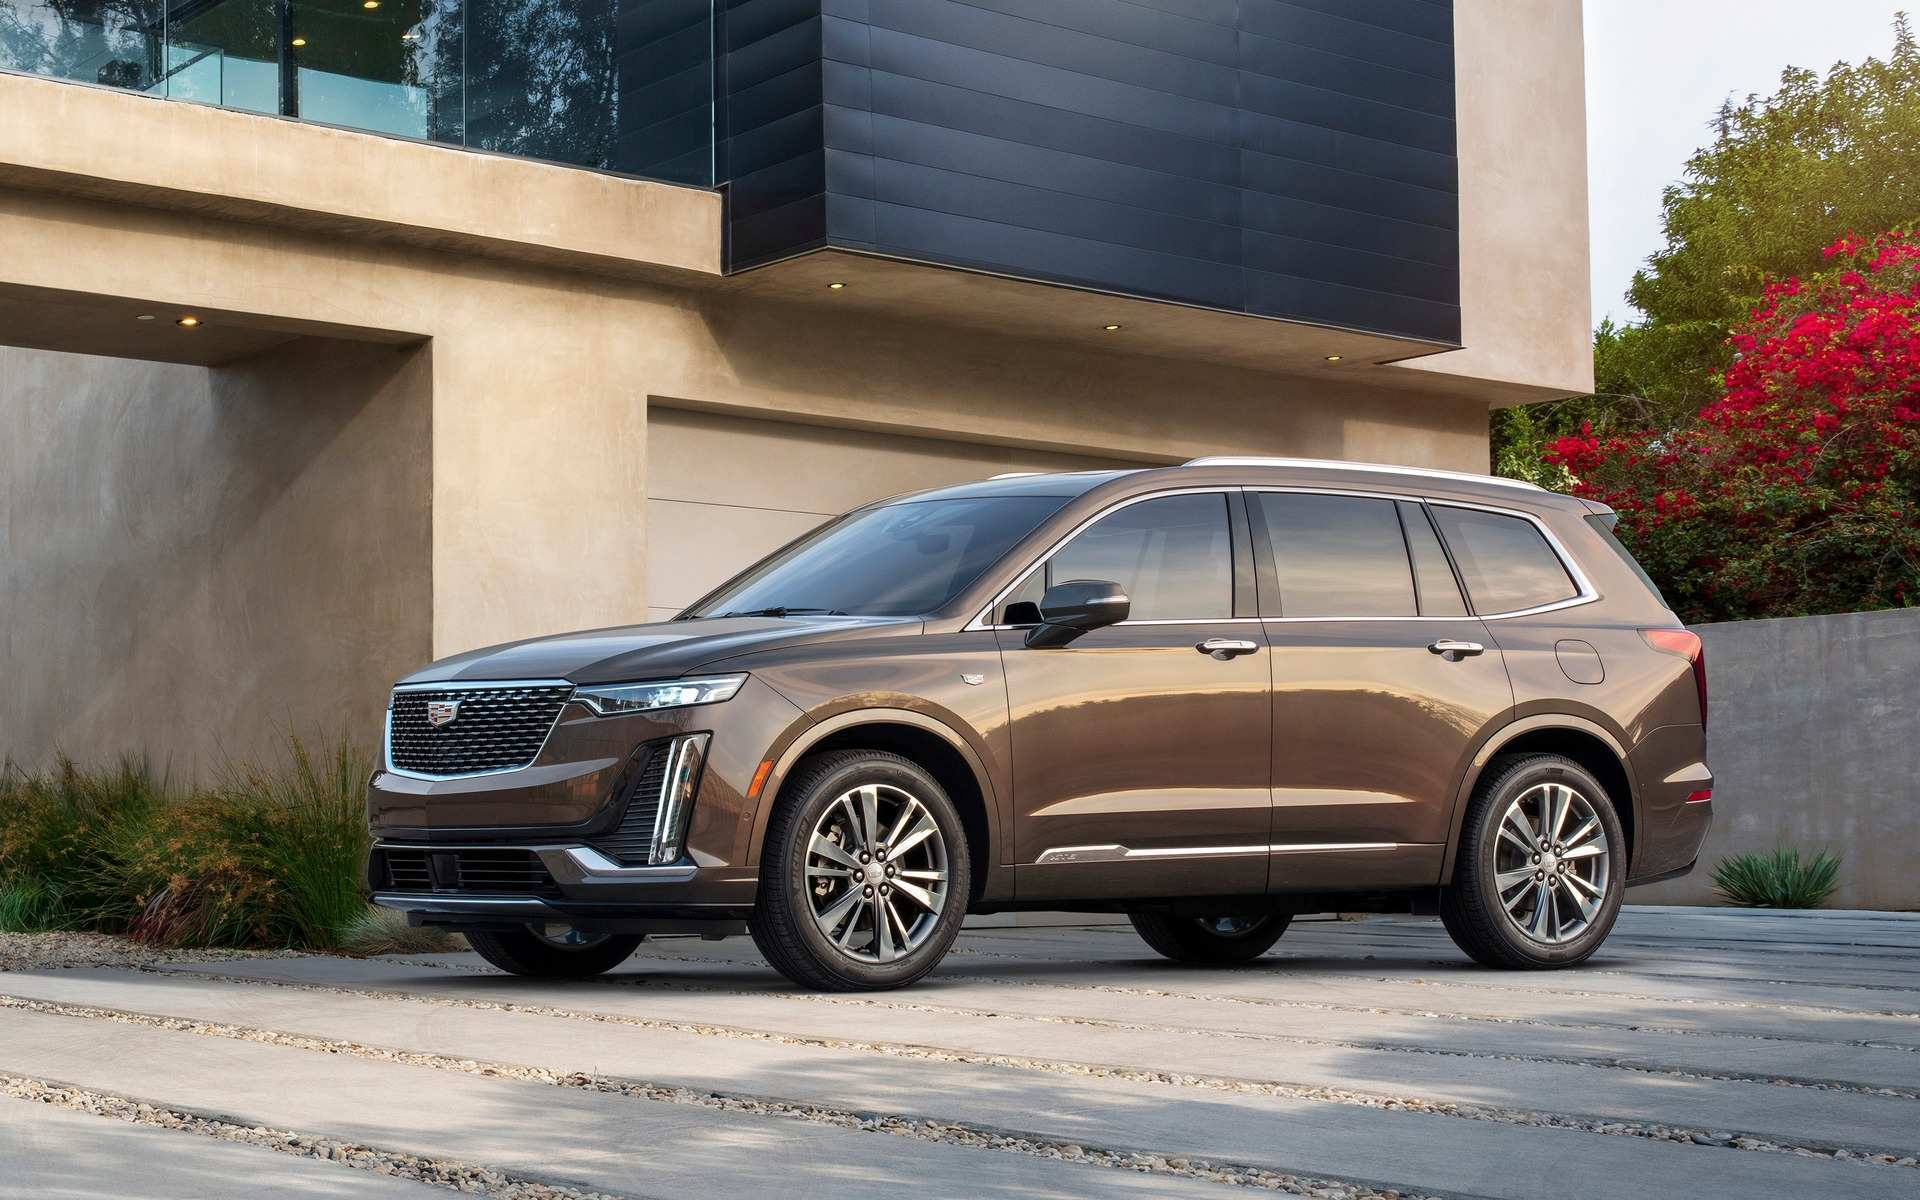 58 Concept of 2020 Cadillac Xt6 Availability Picture by 2020 Cadillac Xt6 Availability